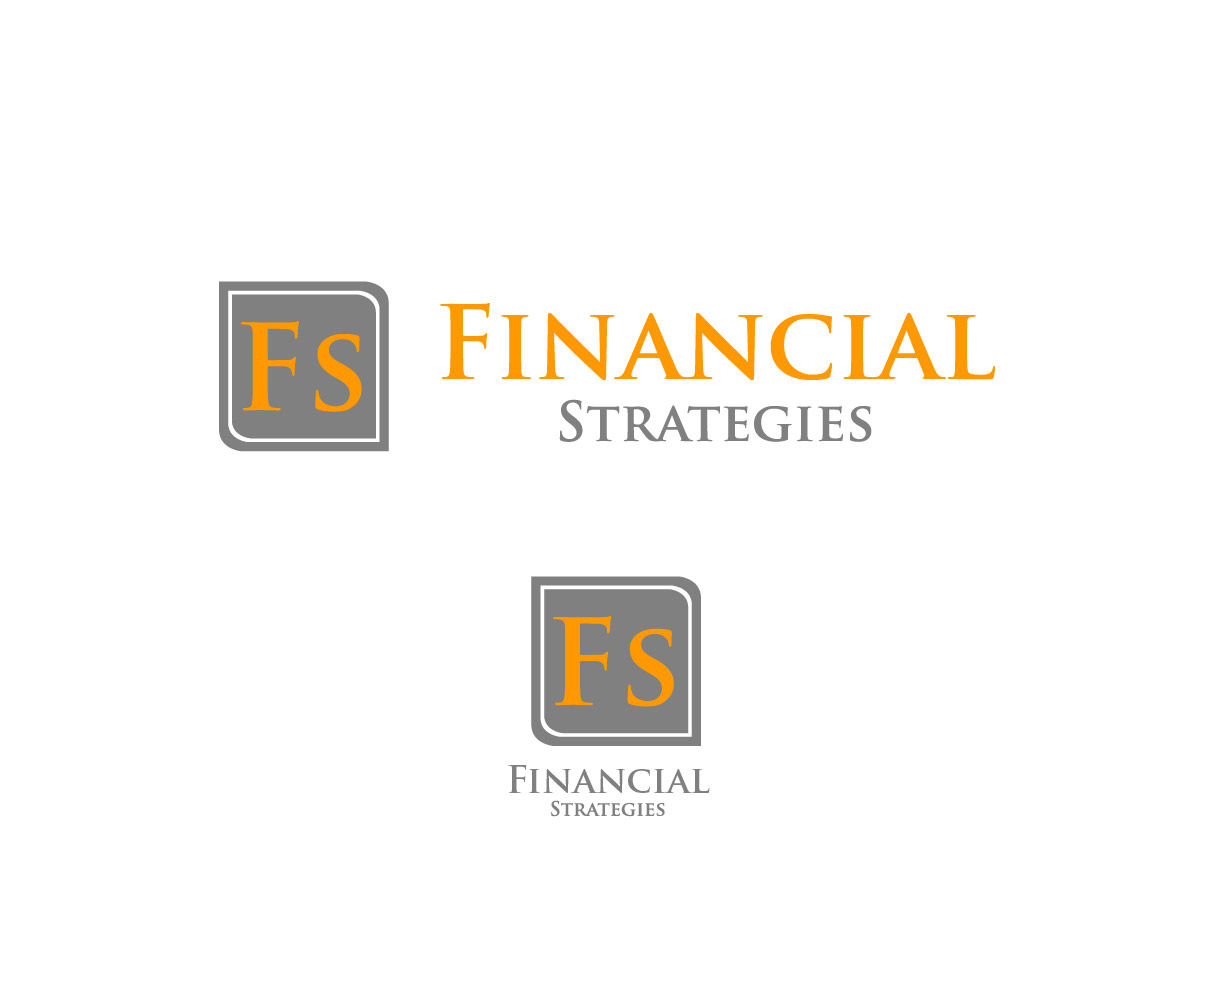 Logo Design by Ika Sari - Entry No. 40 in the Logo Design Contest Logo Design Needed for Exciting New Company FS Financial Strategies.